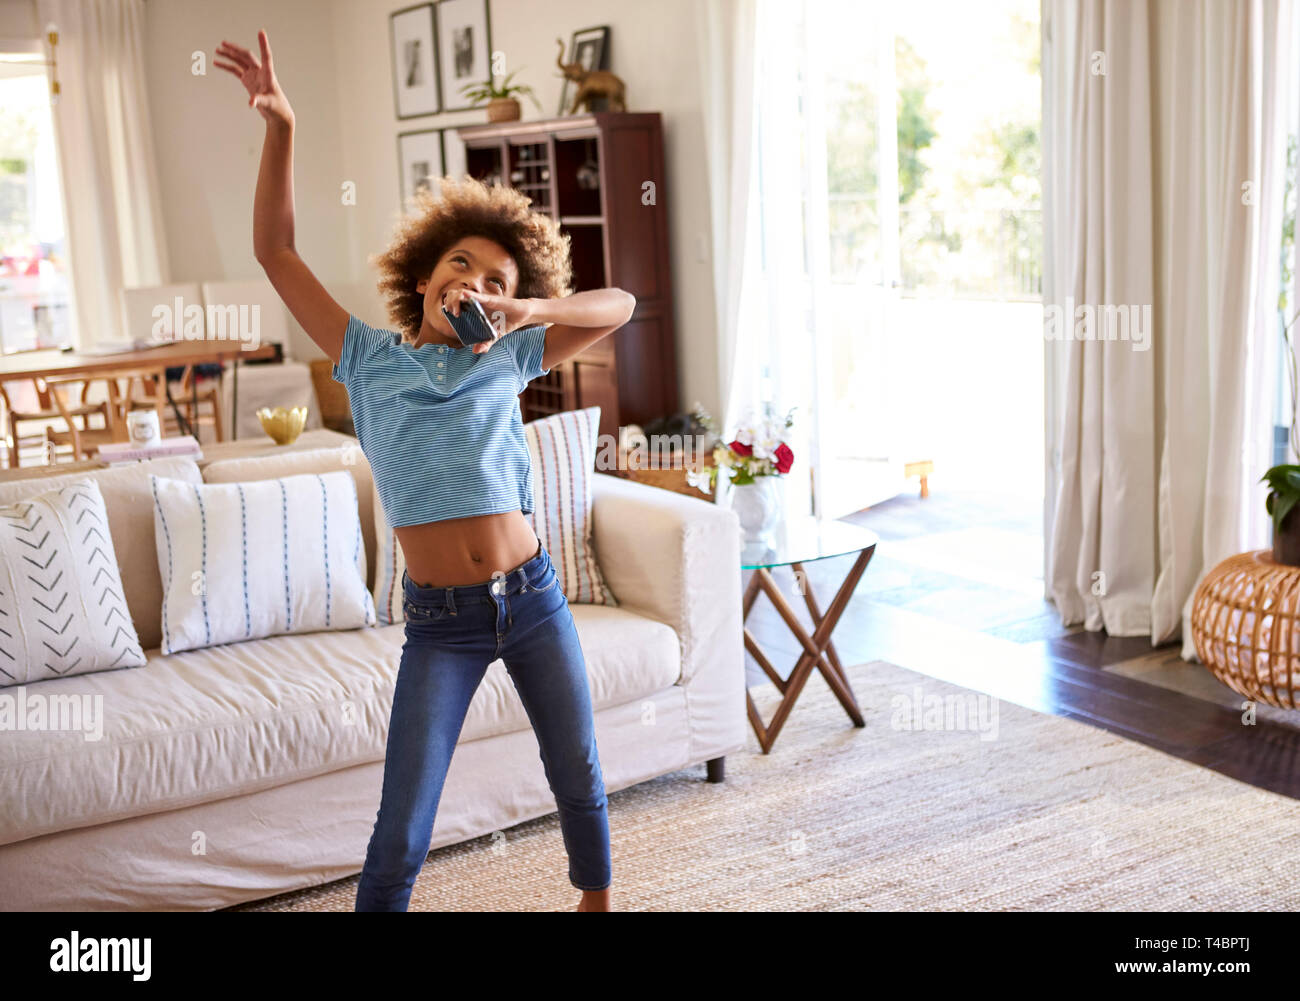 Pre-teen girl dancing and singing along to music in the living room at home using her phone as a microphone, three quarter length - Stock Image